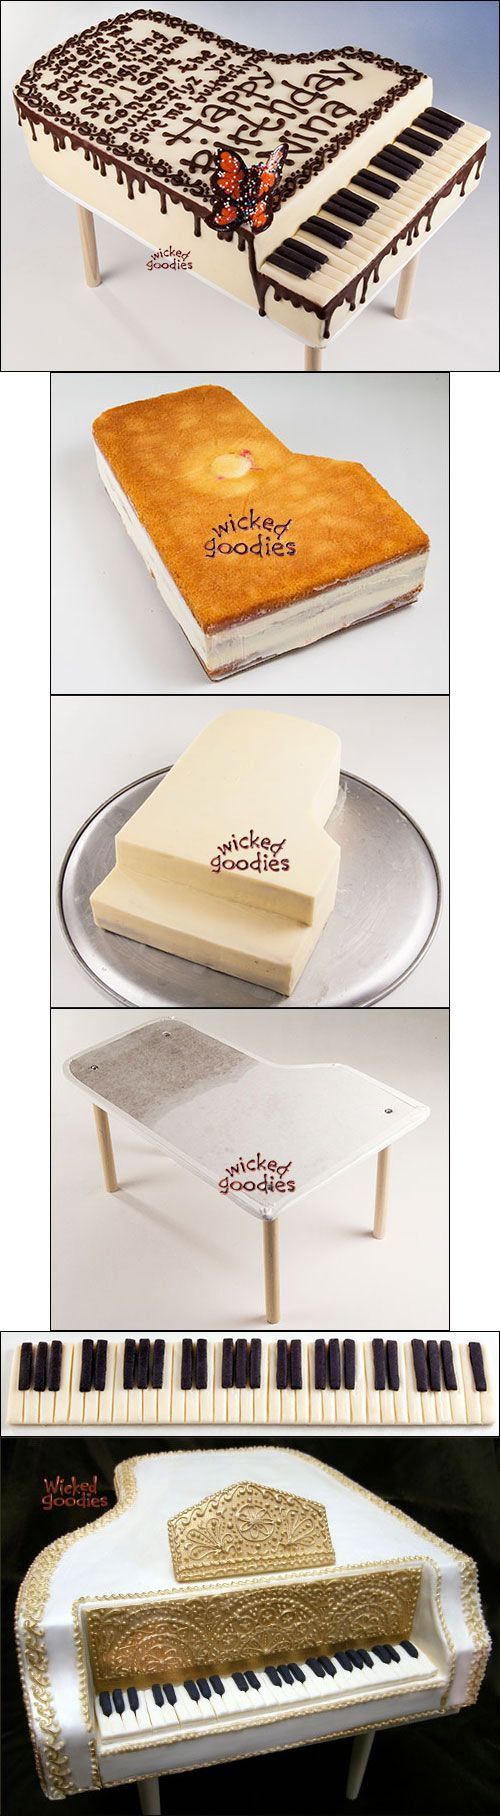 Piano Cake Construction Tutorial by Wicked Goodies